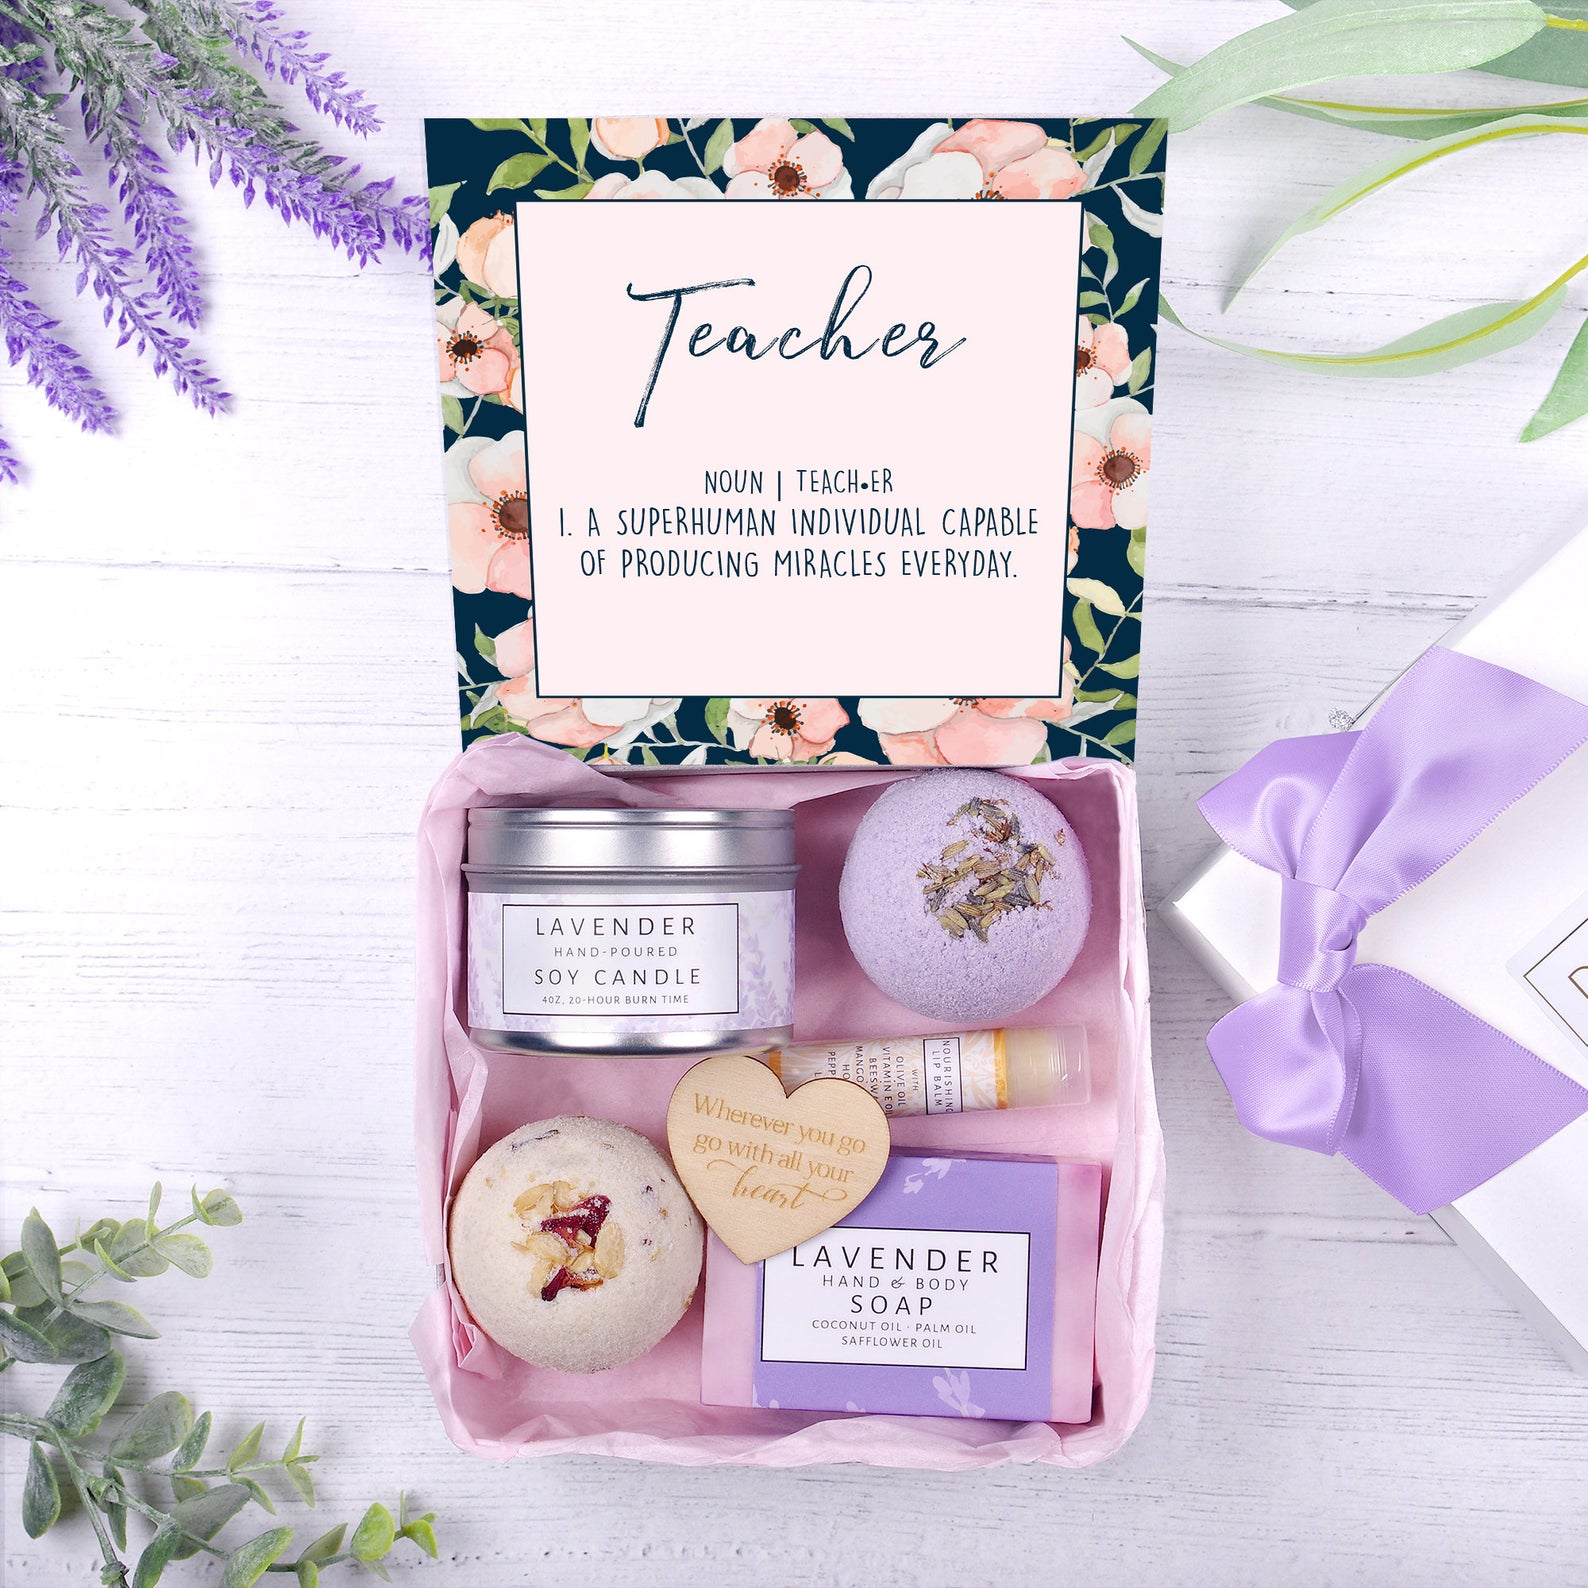 Housewarming Gift New Home Gift Moving Gift Box Love Grows Best in Little Houses Personalized Soy Candle and Succulent Gift Box